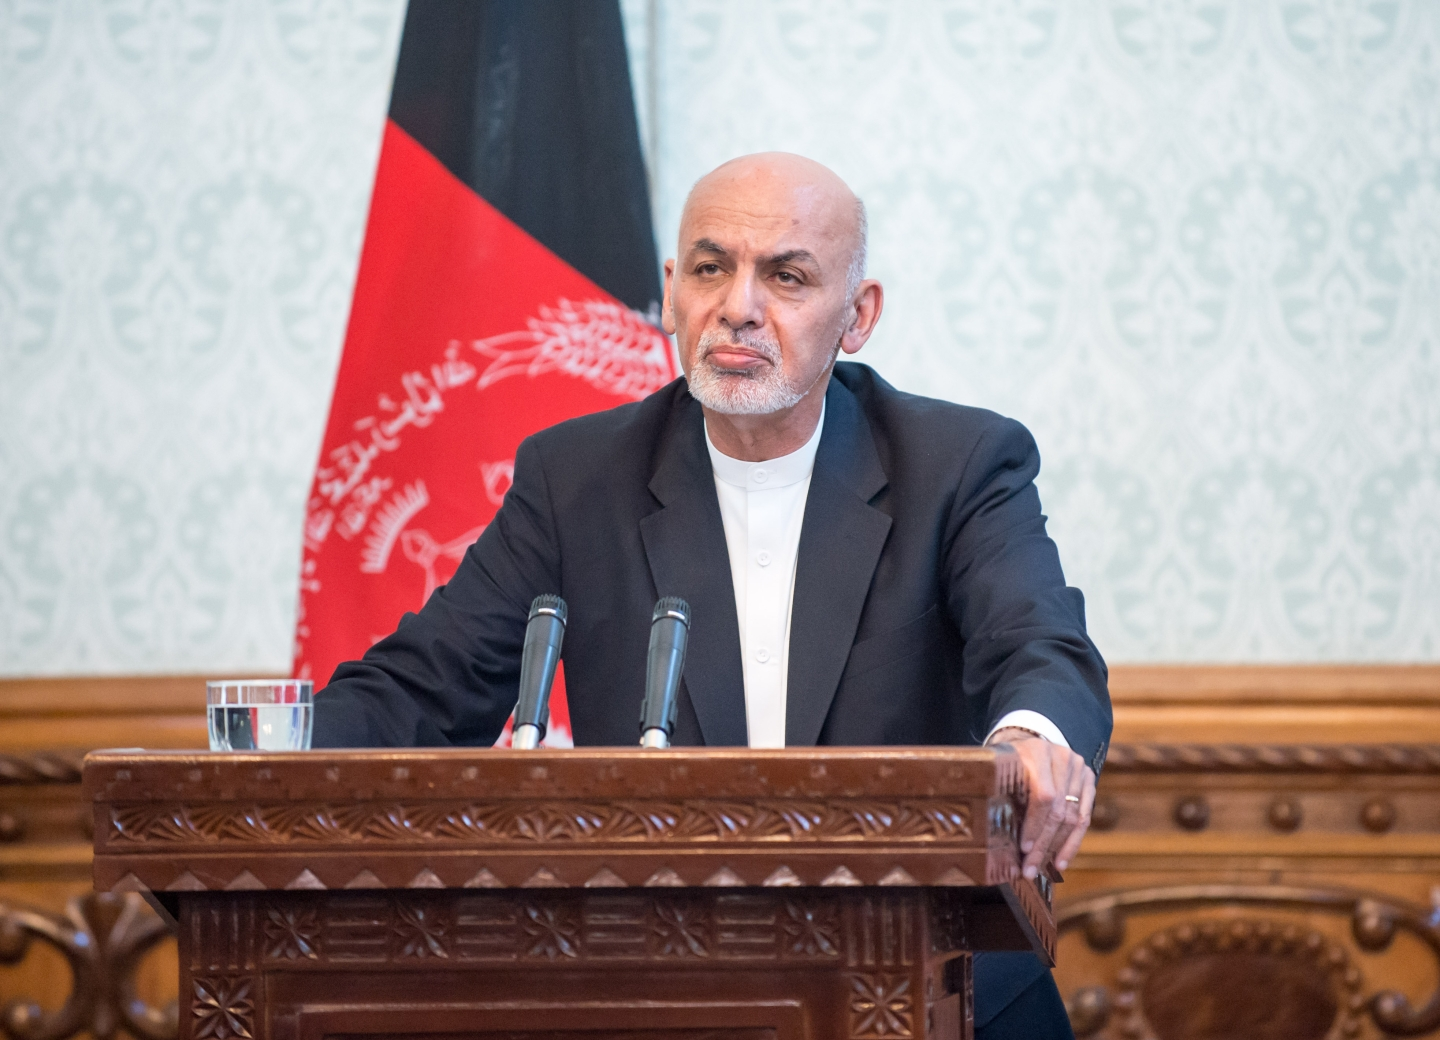 President Ashraf Ghani addresses the press at the Presidential Palace in Afghanistan on Sept. 27, 2017